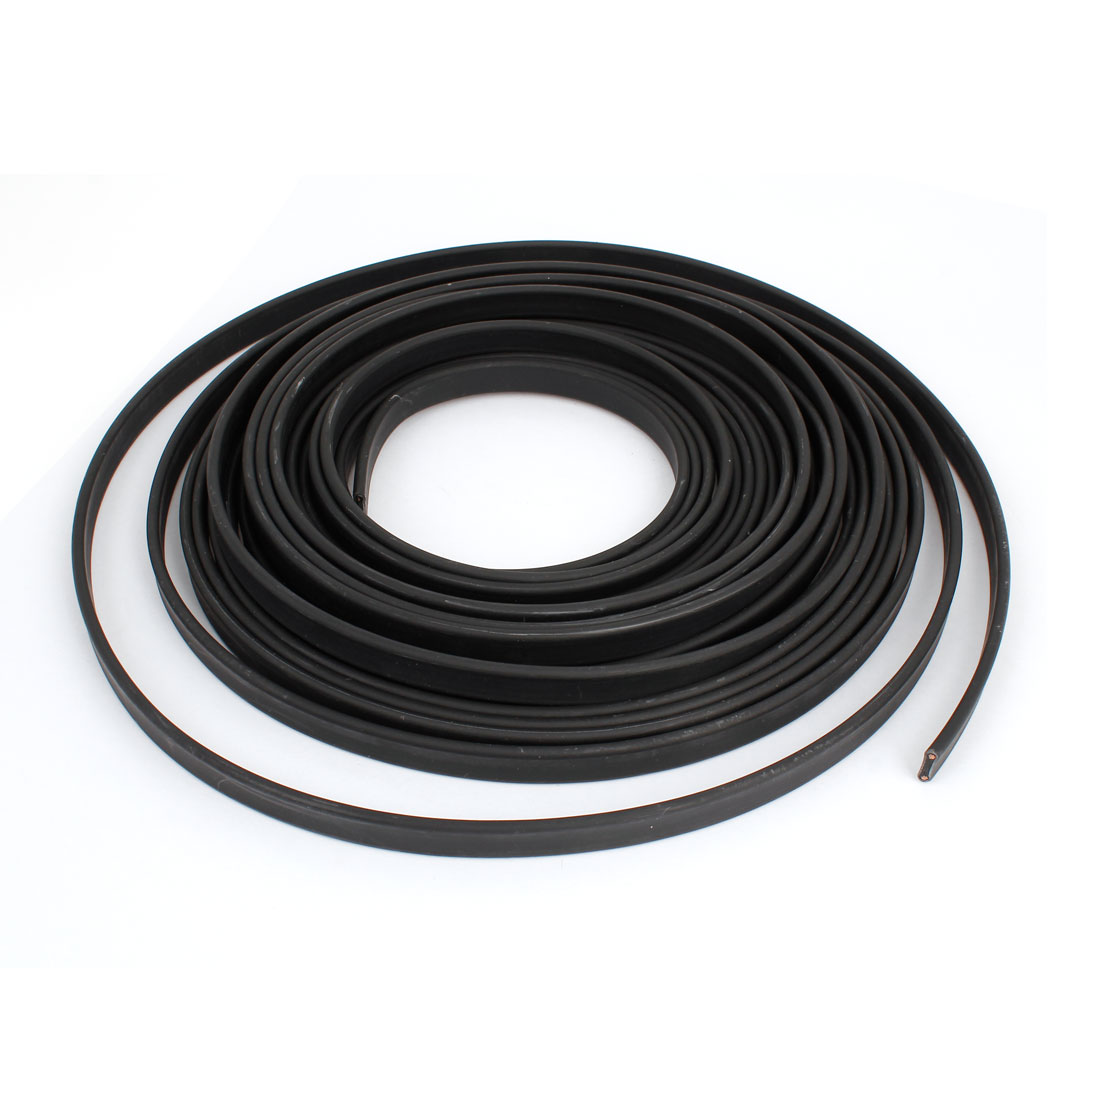 Black Inflaming Retardant Waterproof Heating Cable 380V 10M x 11mm